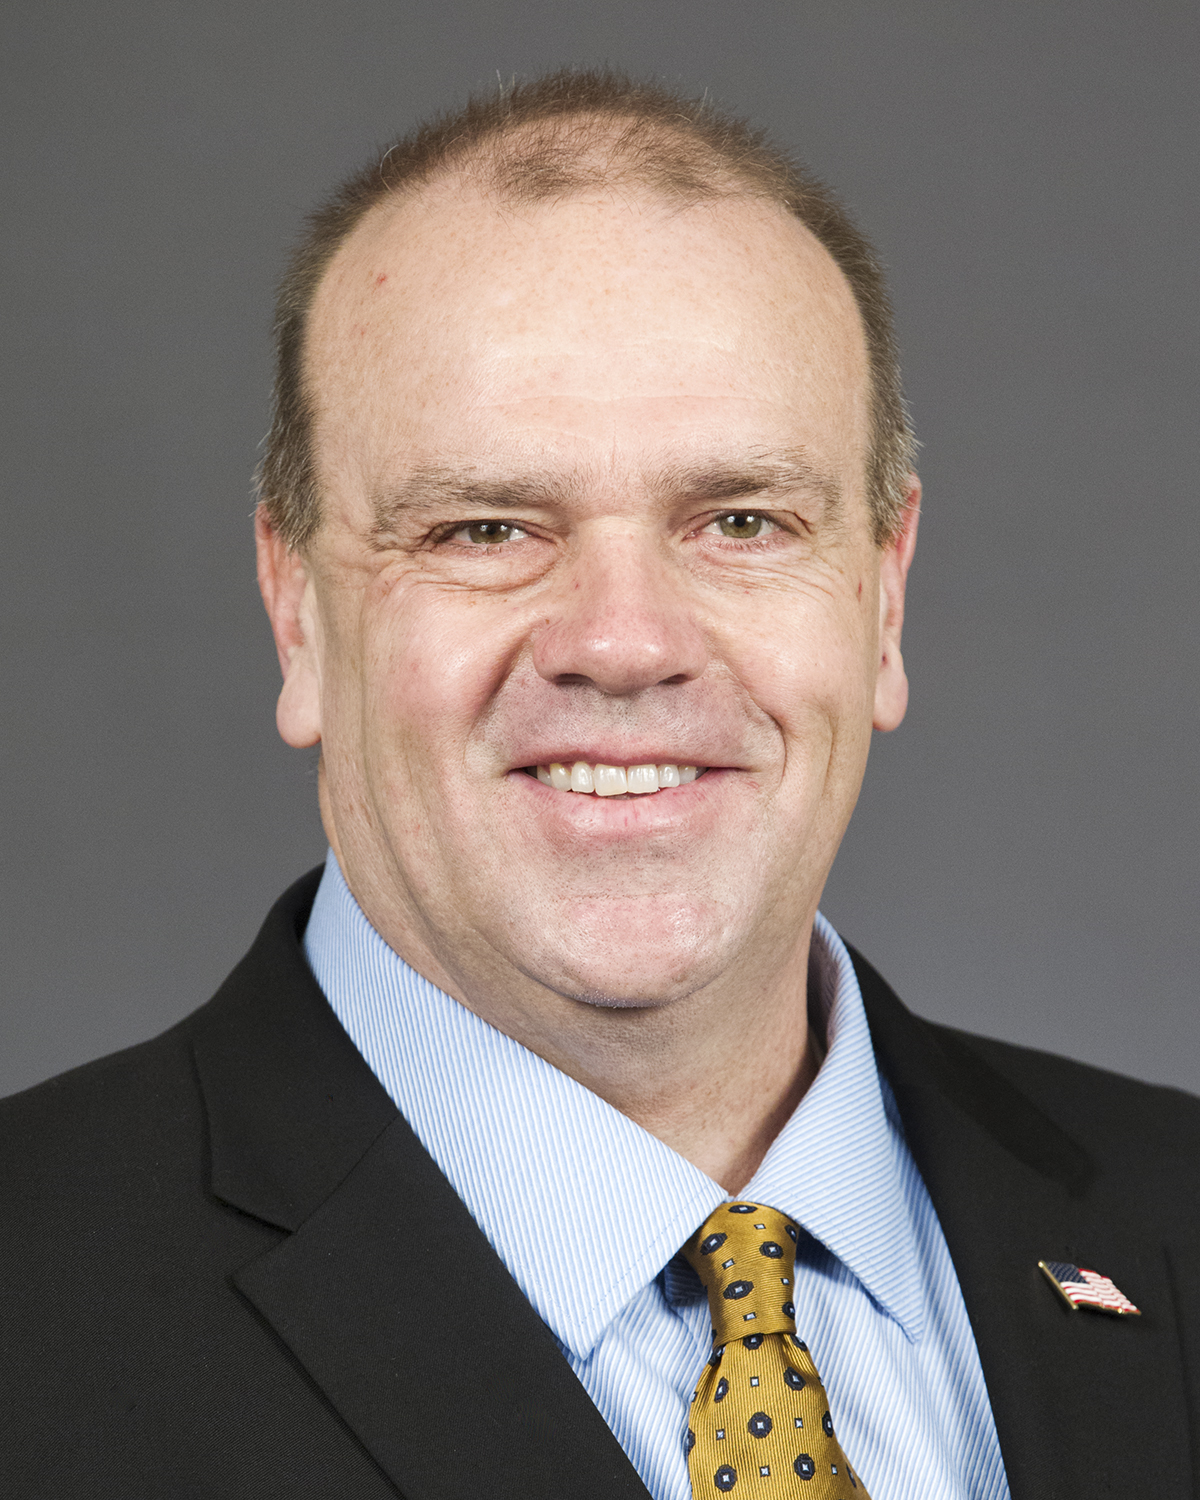 Representative Matt Bliss